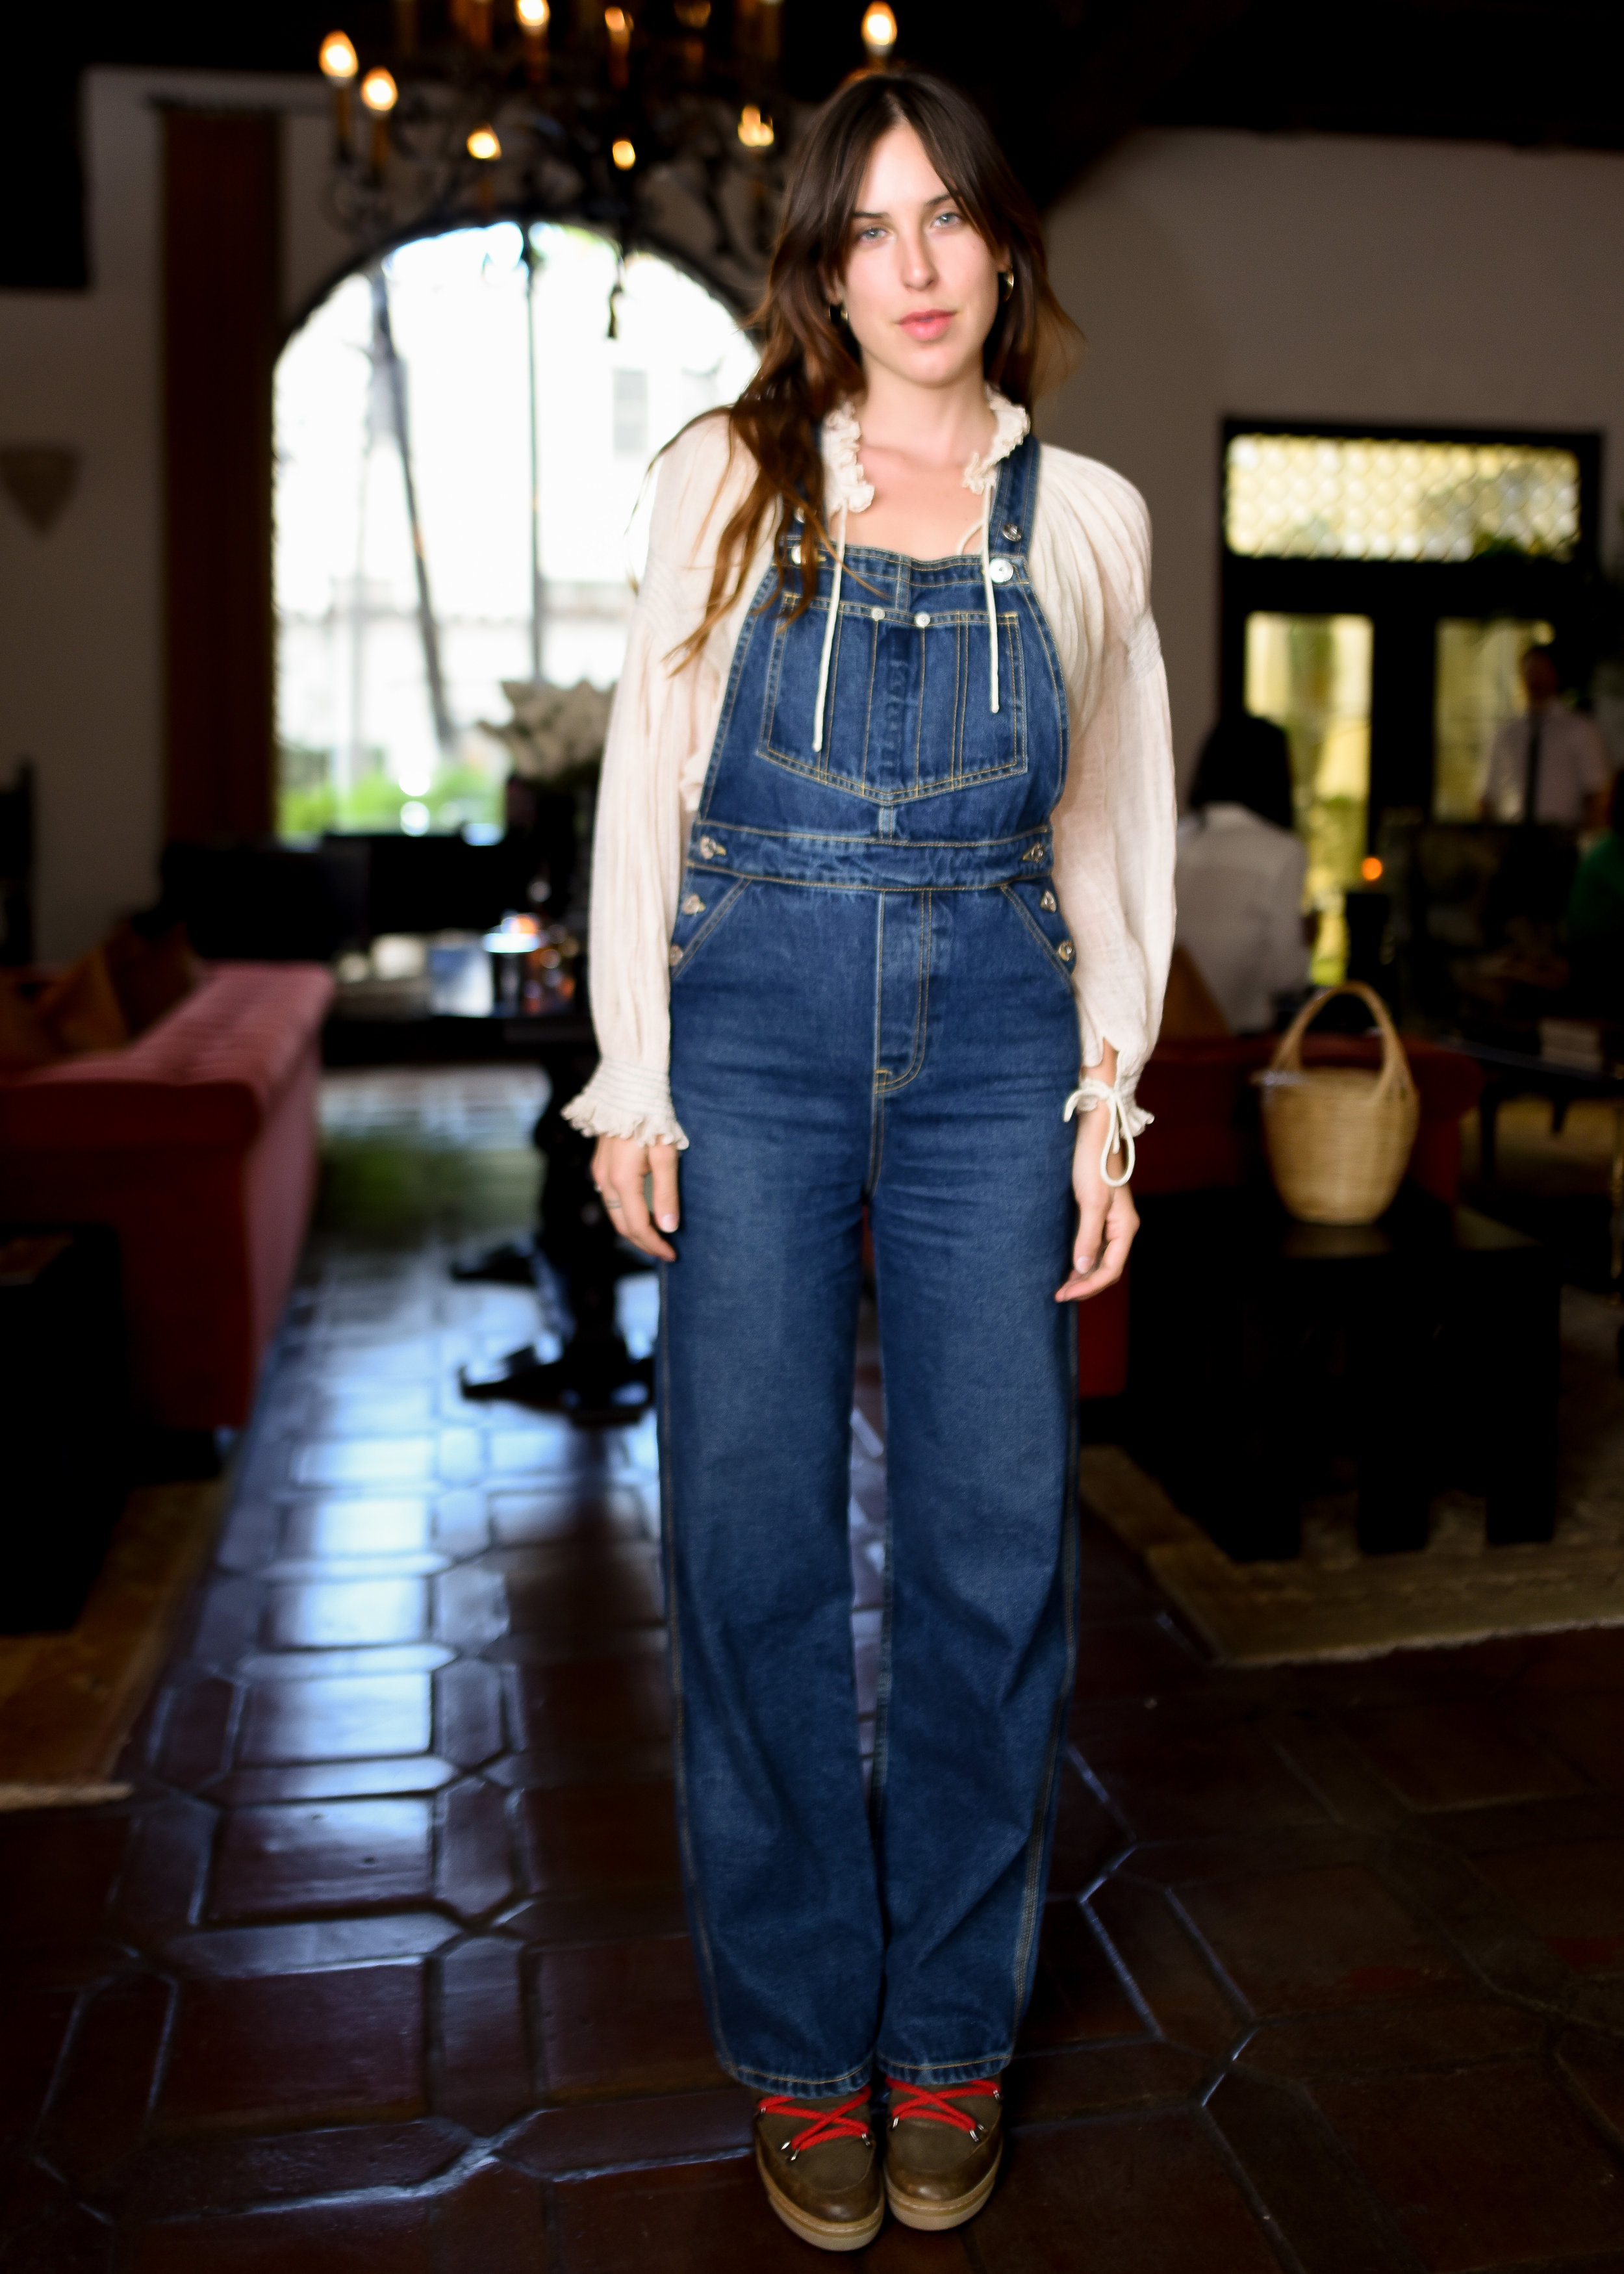 Tallulah Willis in  Olympia Overall Malibu wash  at Eve Denim x Gia Coppola Event